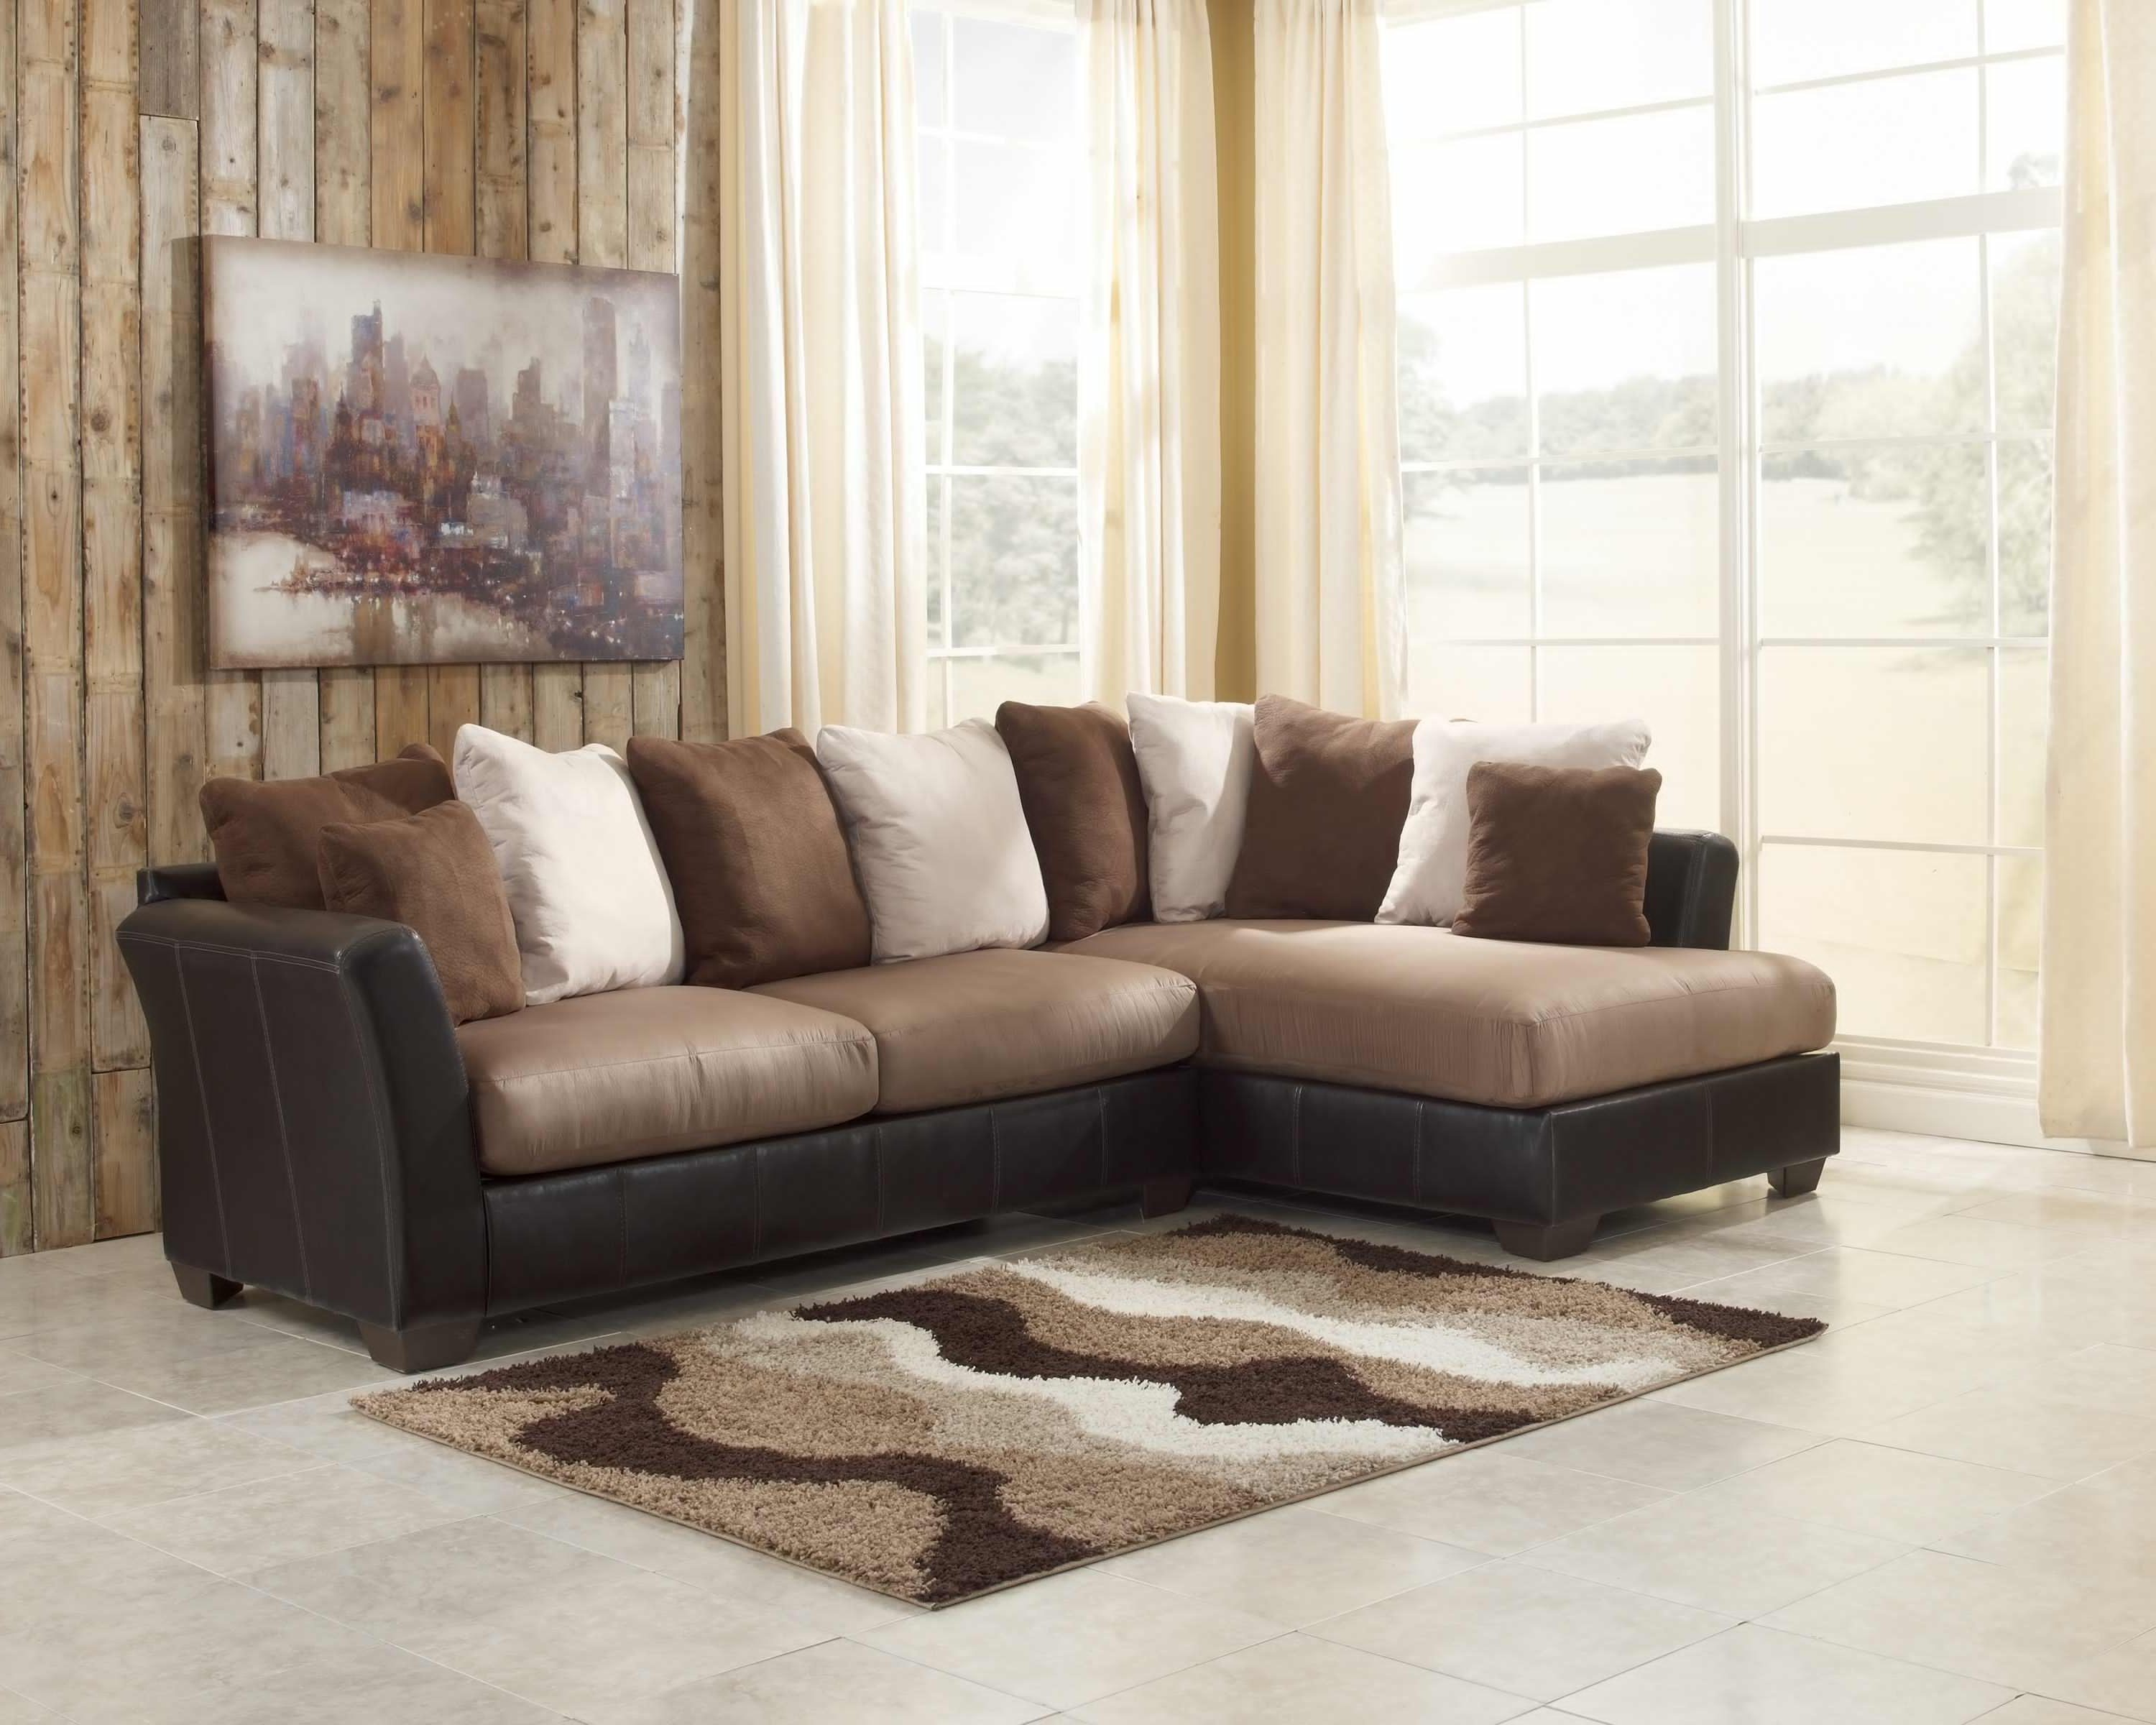 Sectional Sofa Design: Two Piece Sectional Sofa Chaise Leather With Regard To Most Recently Released 2 Piece Sectionals With Chaise (View 15 of 15)